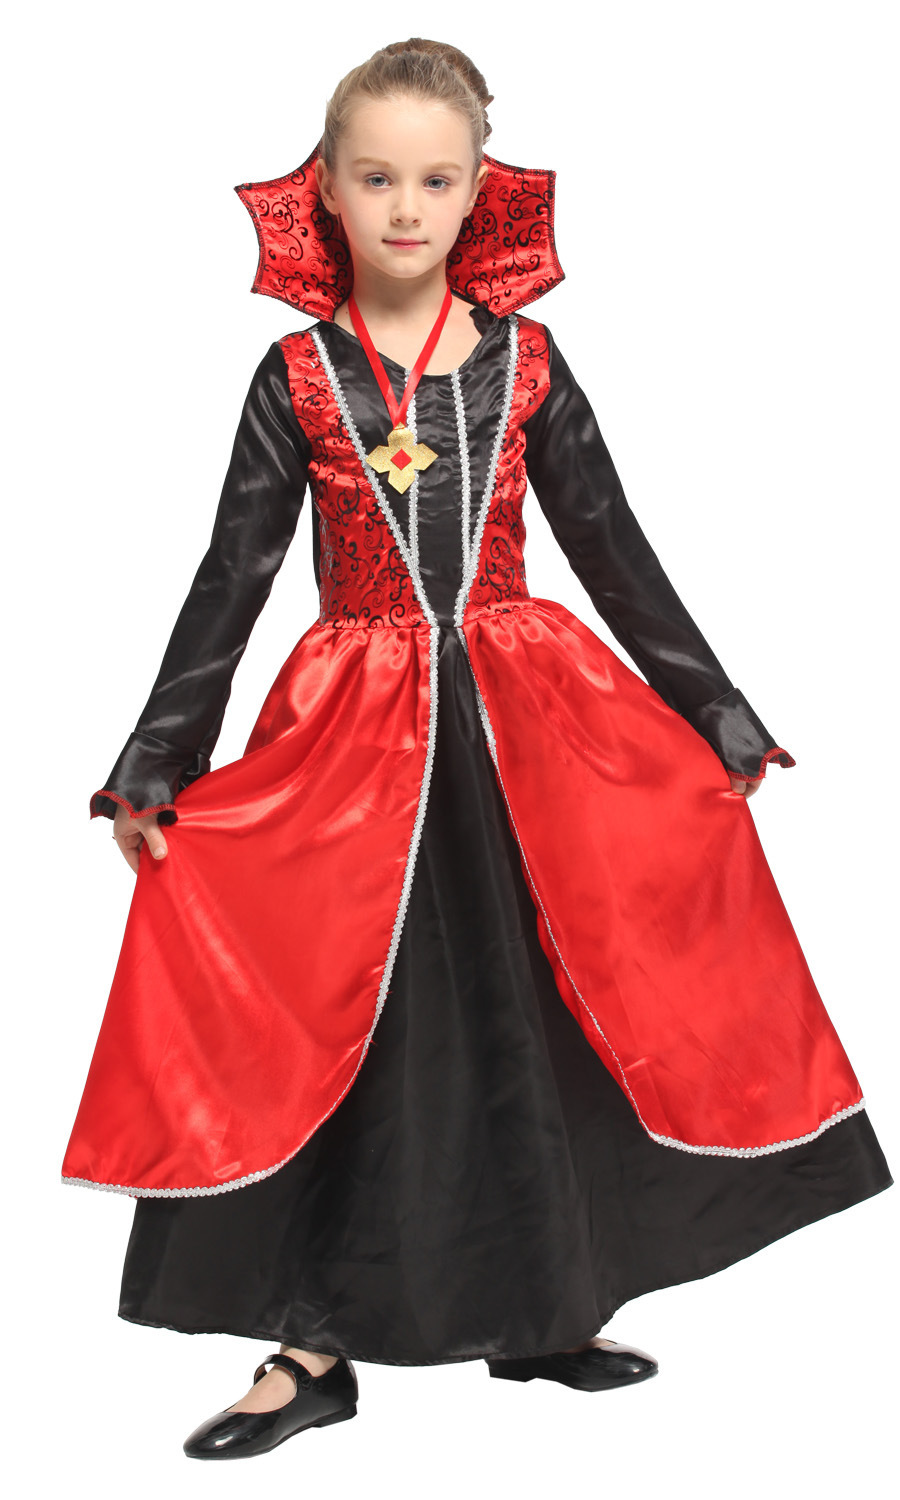 new year halloween costume for kids vampire witch anime cosplay costumes carnaval christmas girl children child boys fancy dress 2